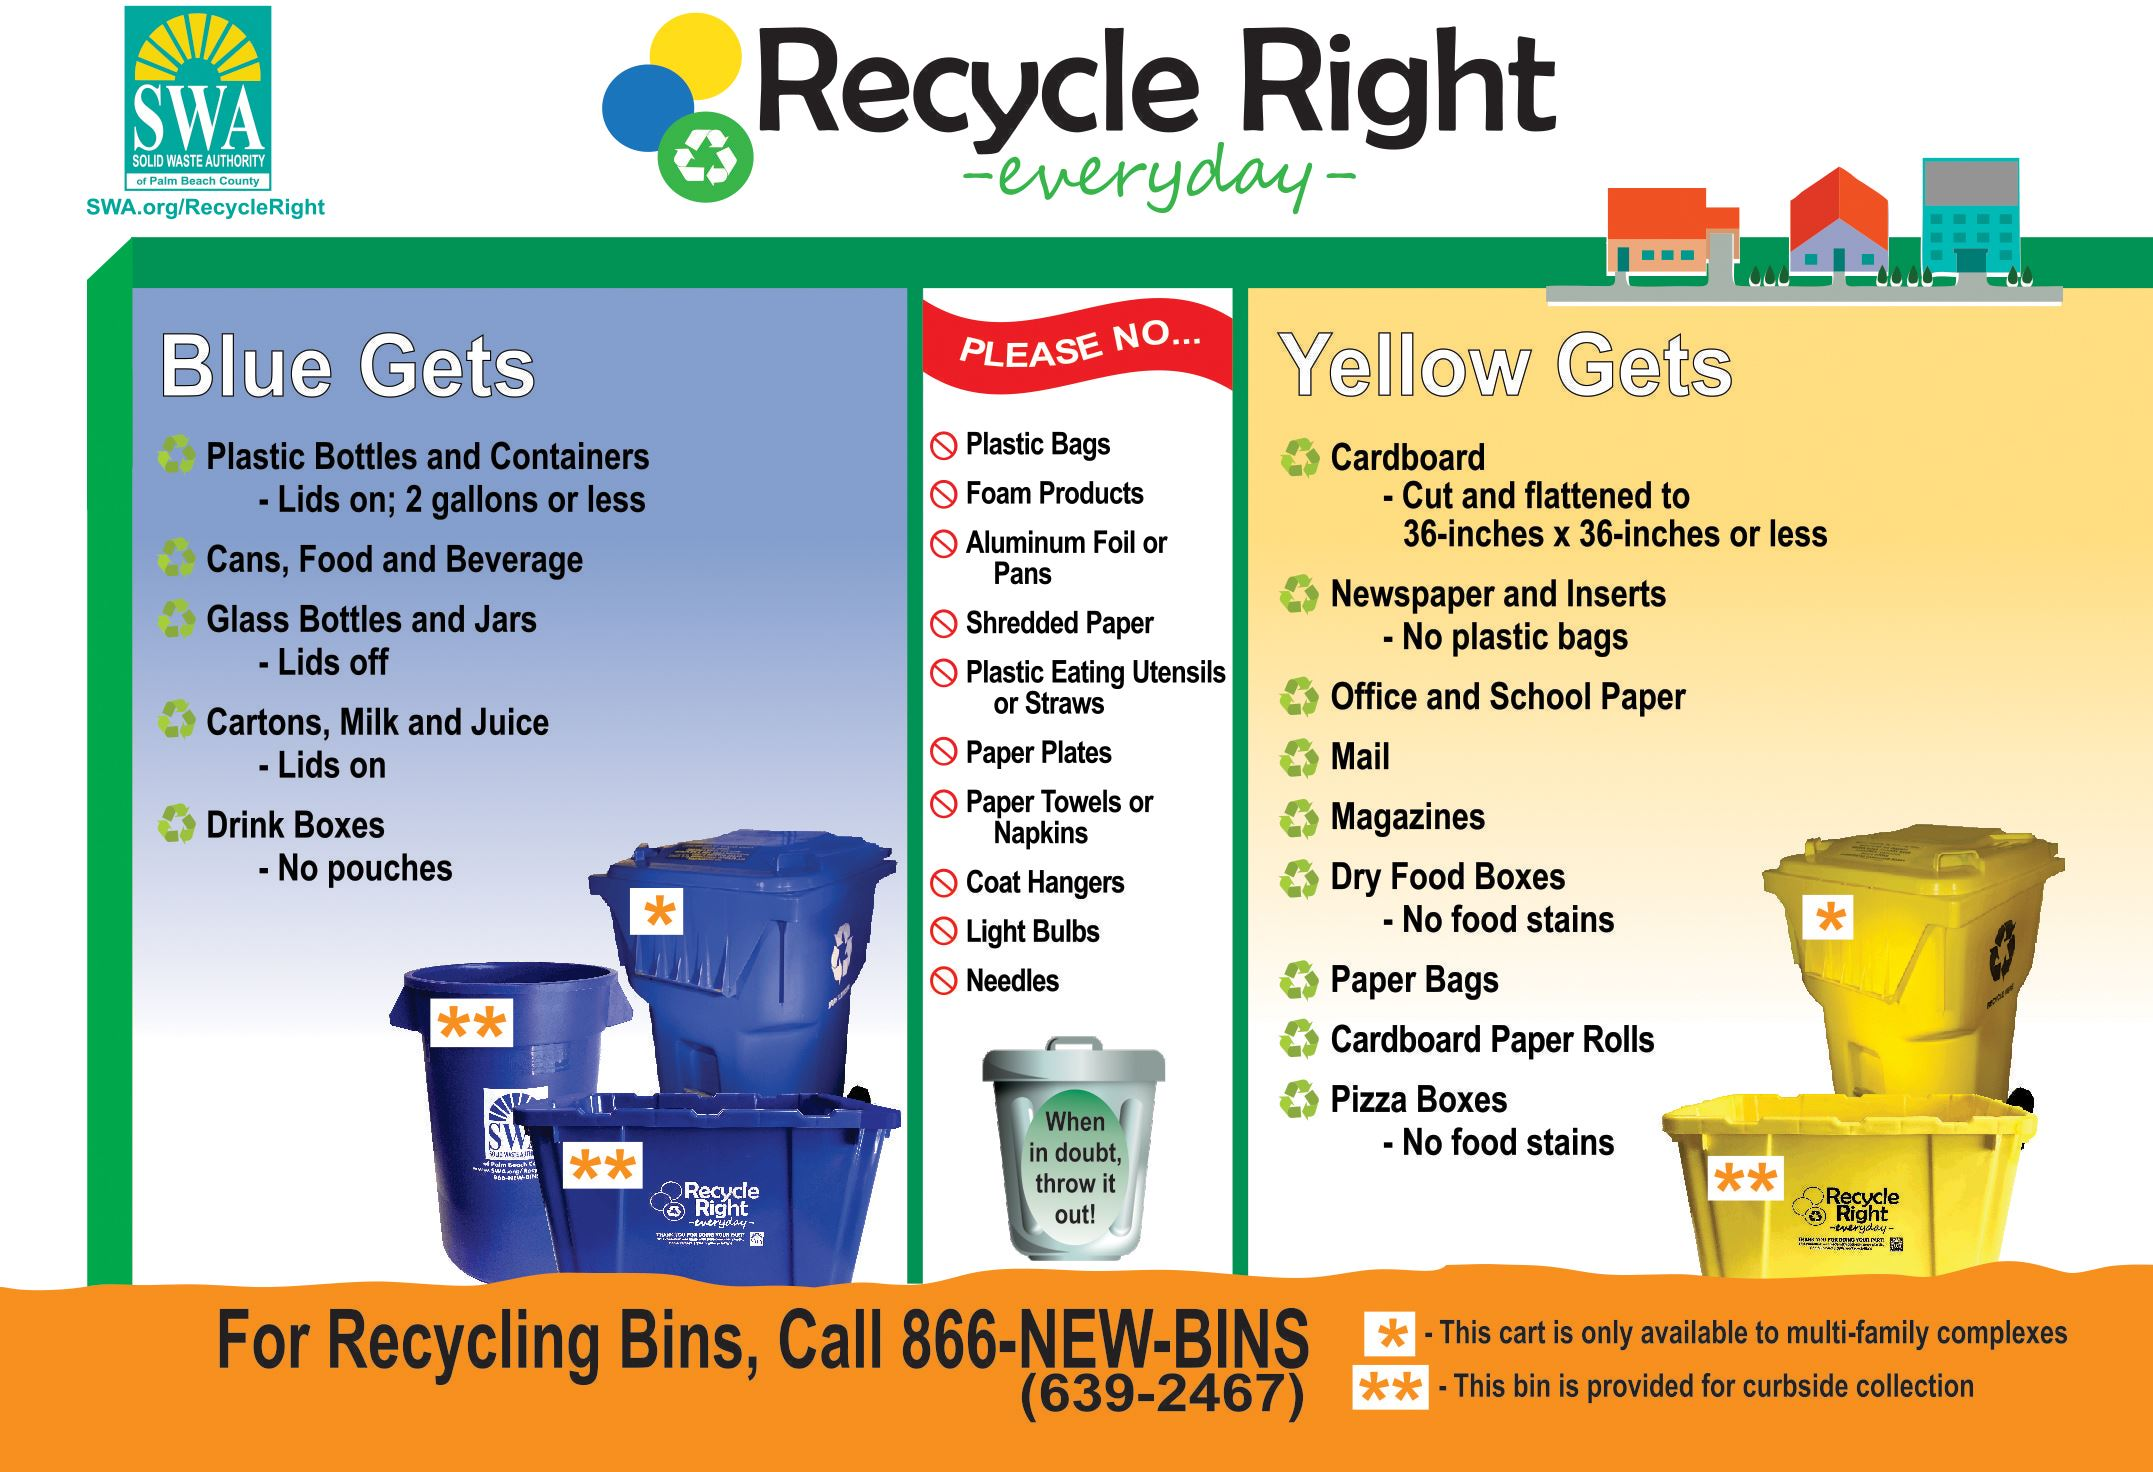 2018 Recycle Right Image for web_big